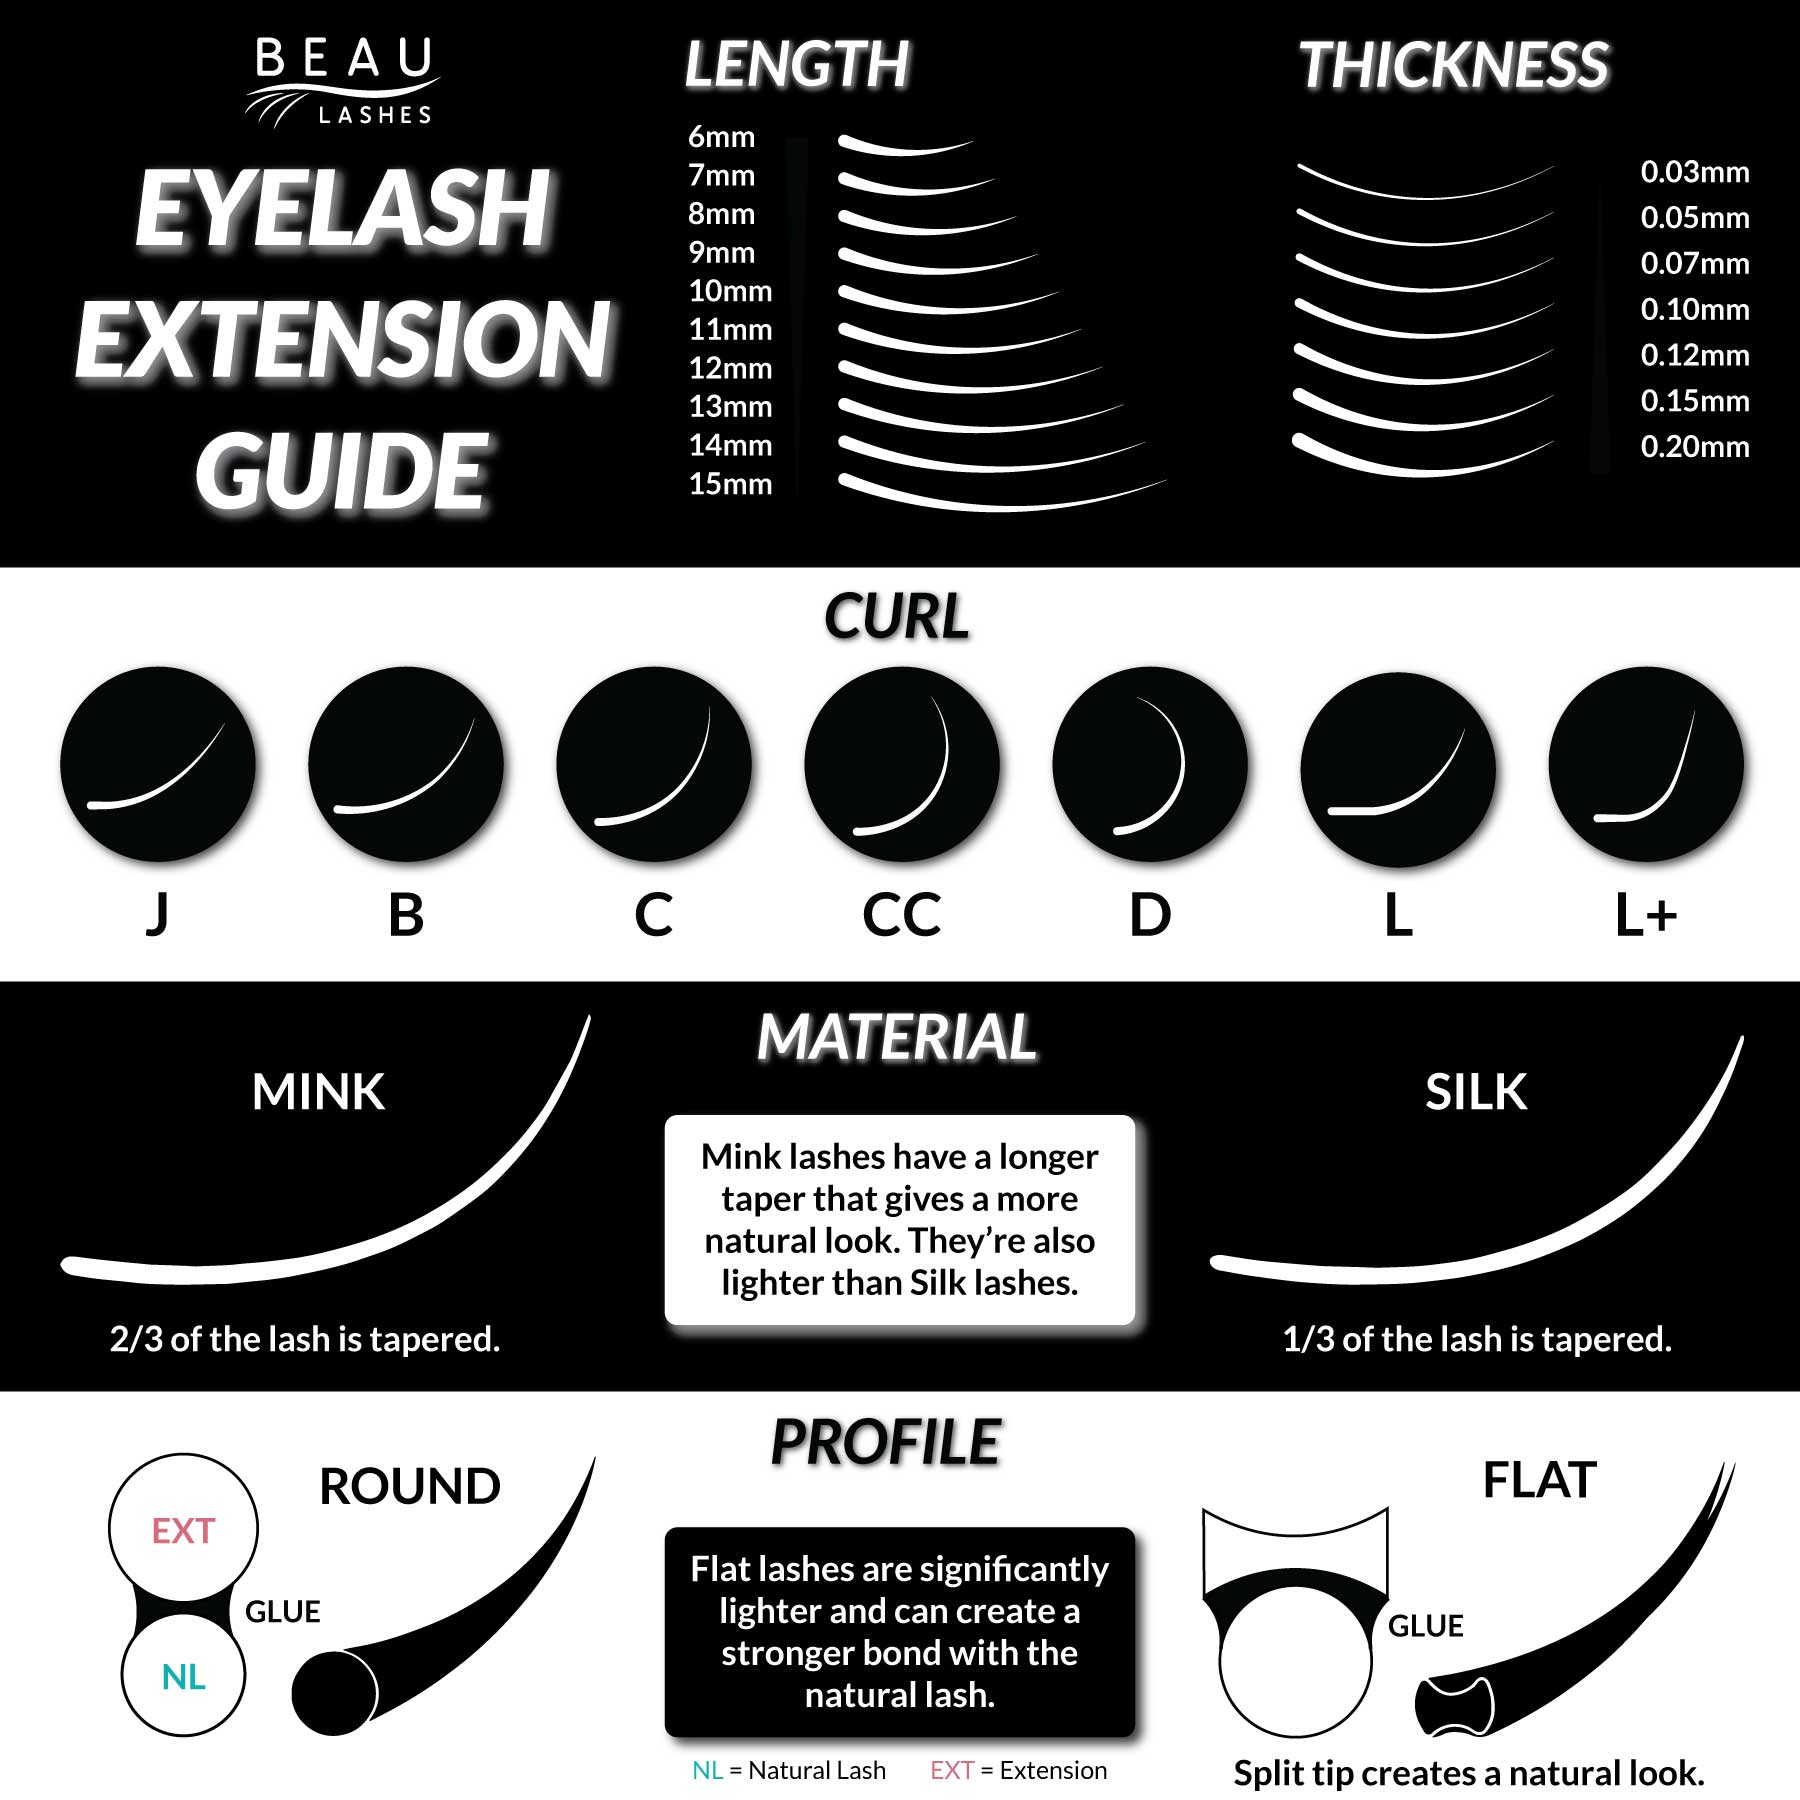 Beau Lashes Eyelash Extension Guide